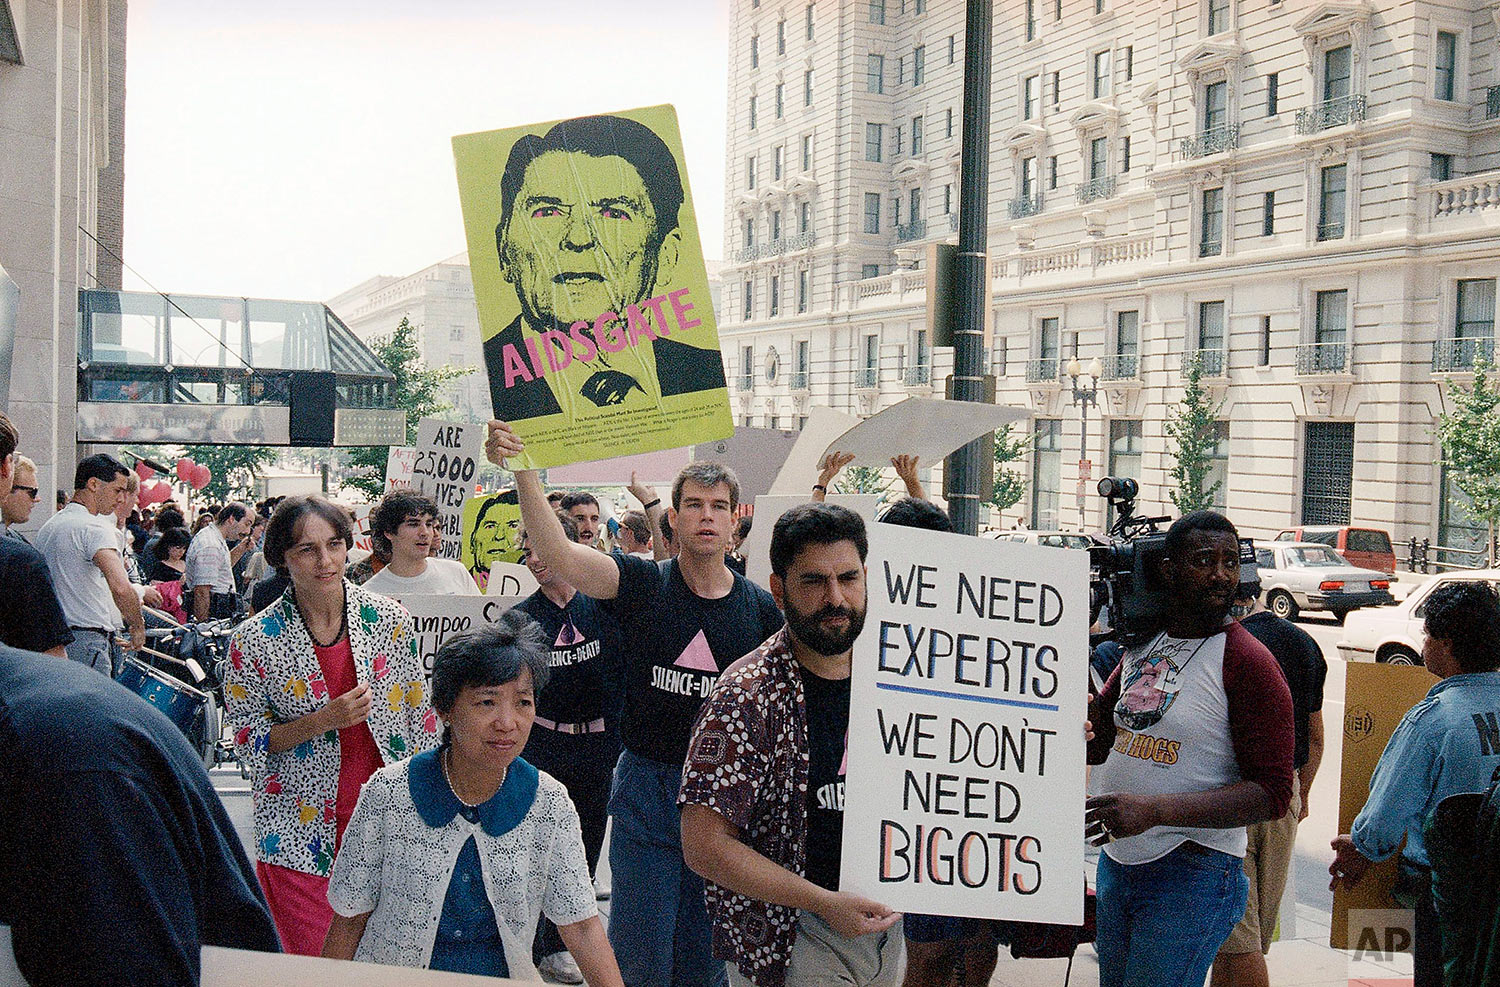 In this Wednesday, Sept. 9, 1987 file photo, protesters carry signs, including one depicting President Ronald Reagan, during a demonstration outside the National Press Club in Washington. The demonstration was held as the president's AIDS commission met at the press club. (AP Photo/Dennis Cook)